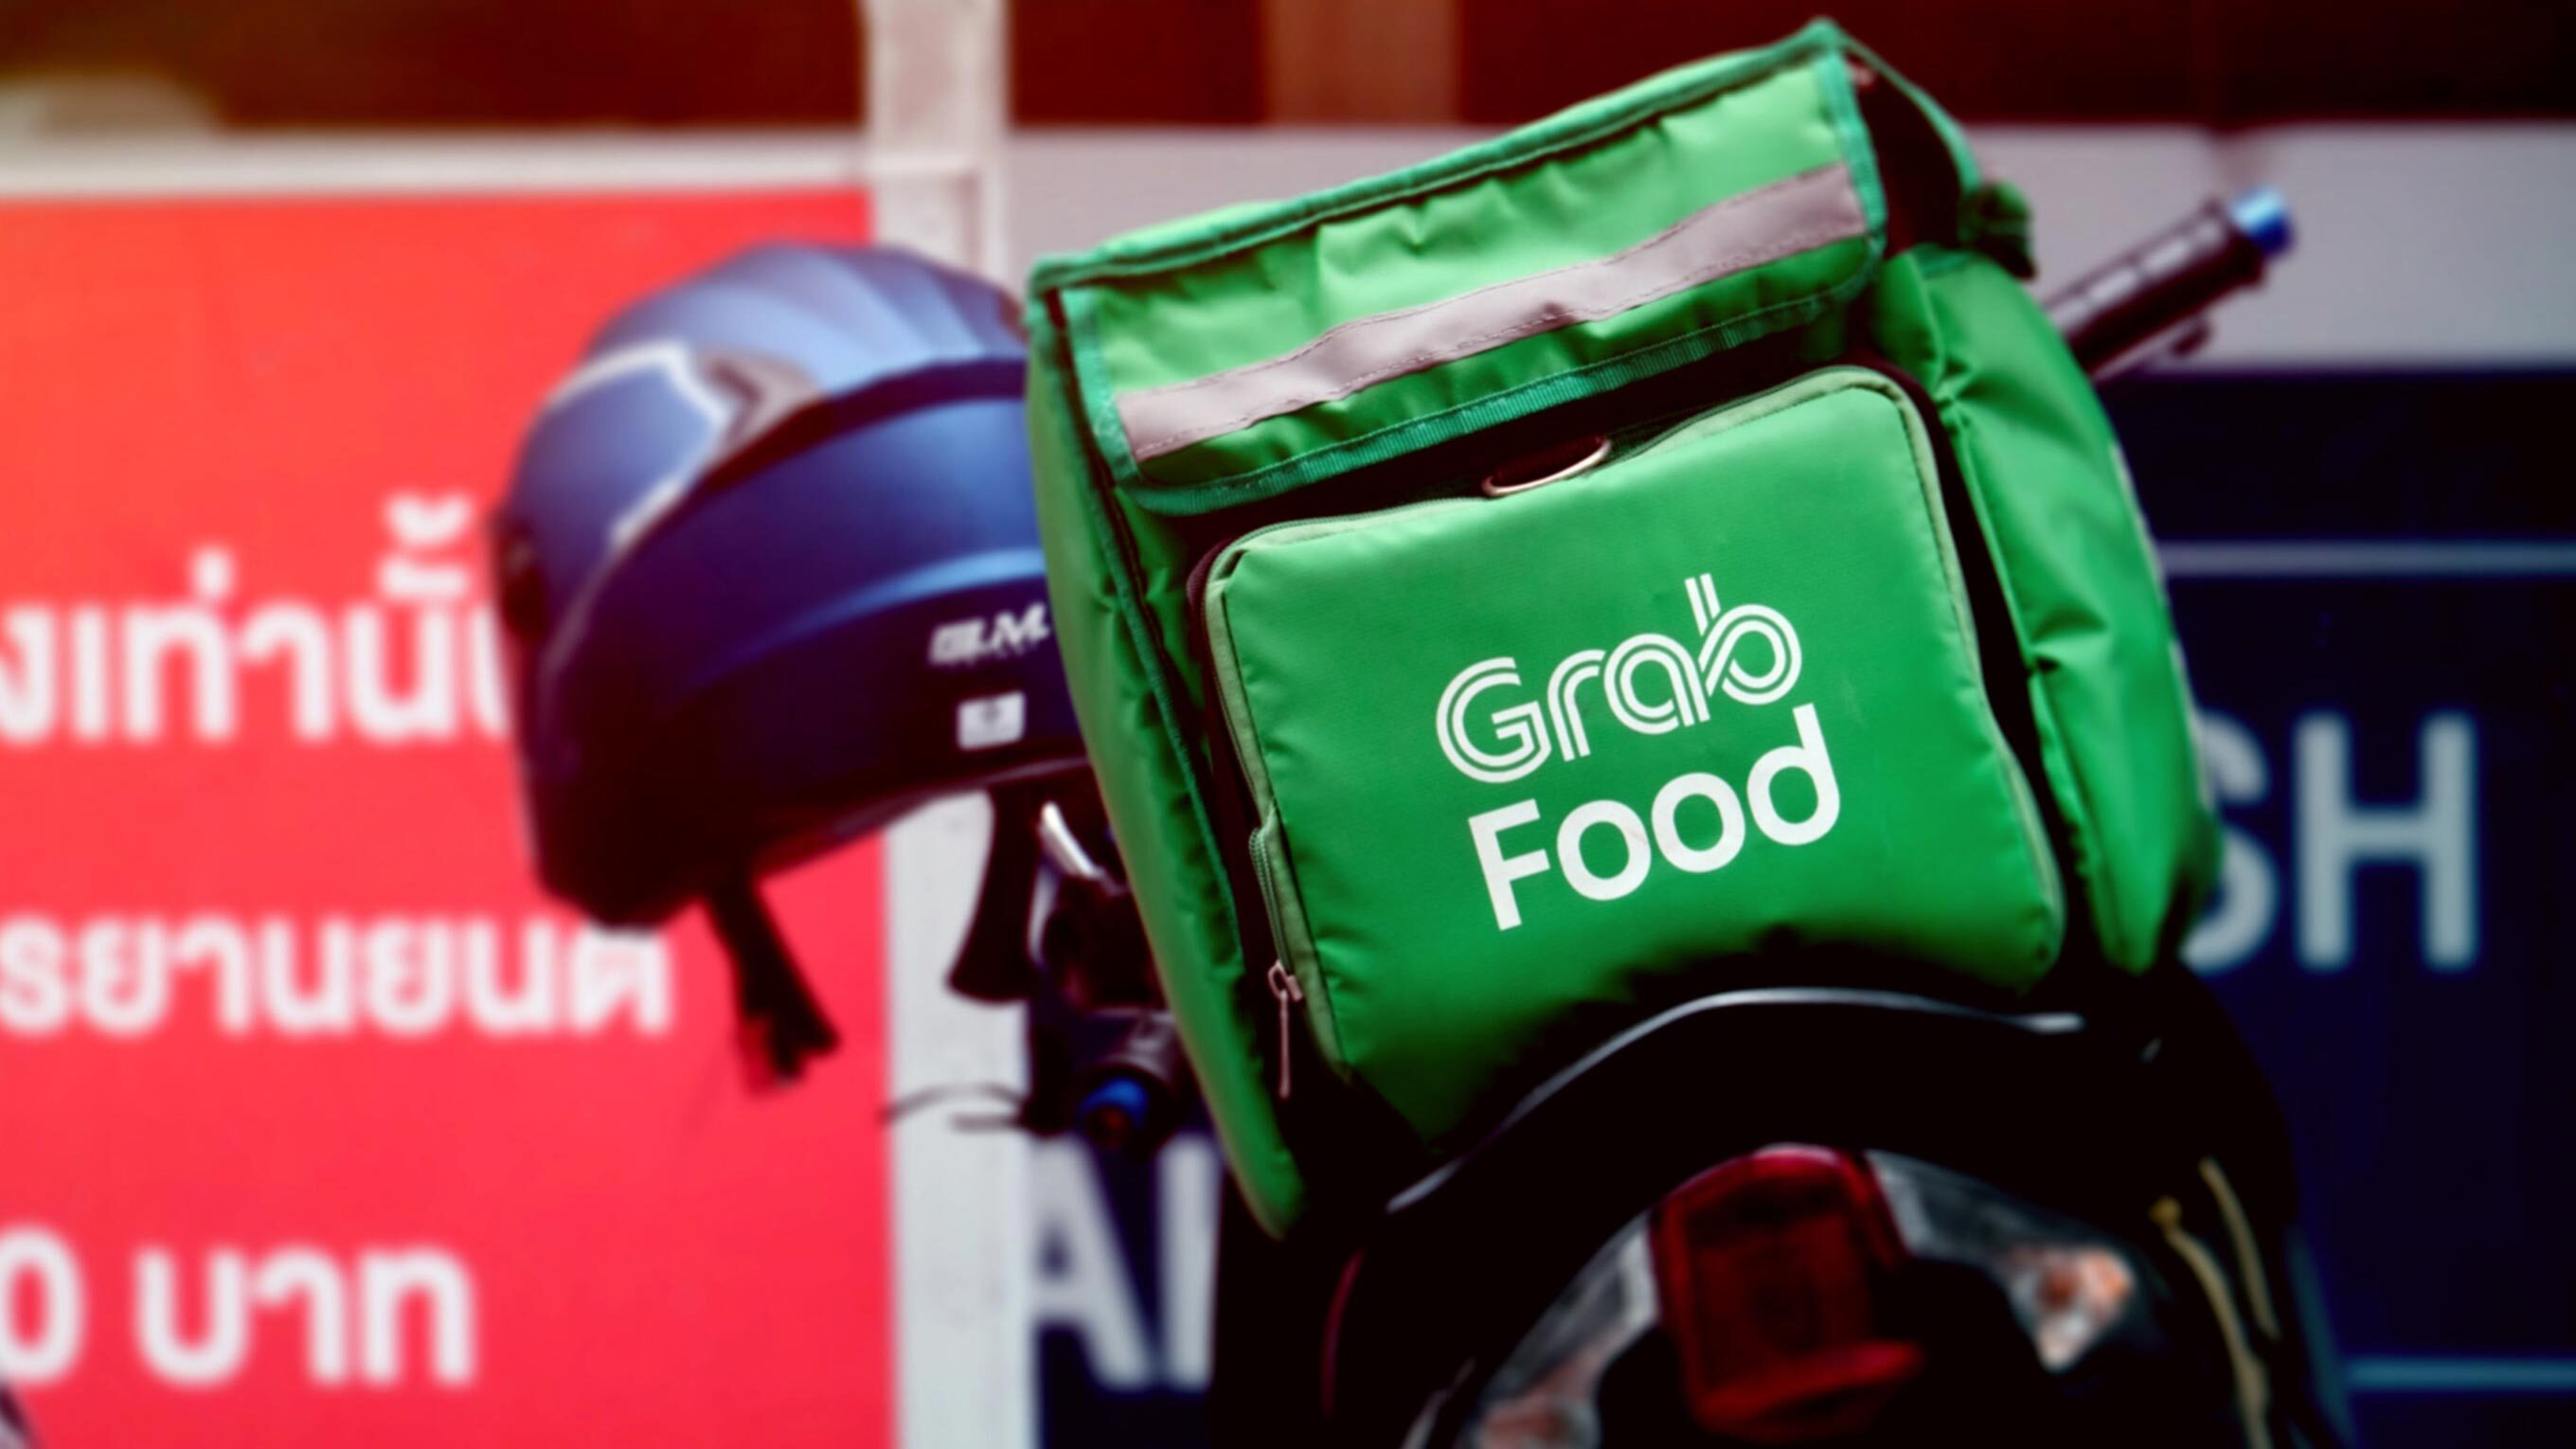 Food delivery platforms and the tech revolution in emerging markets